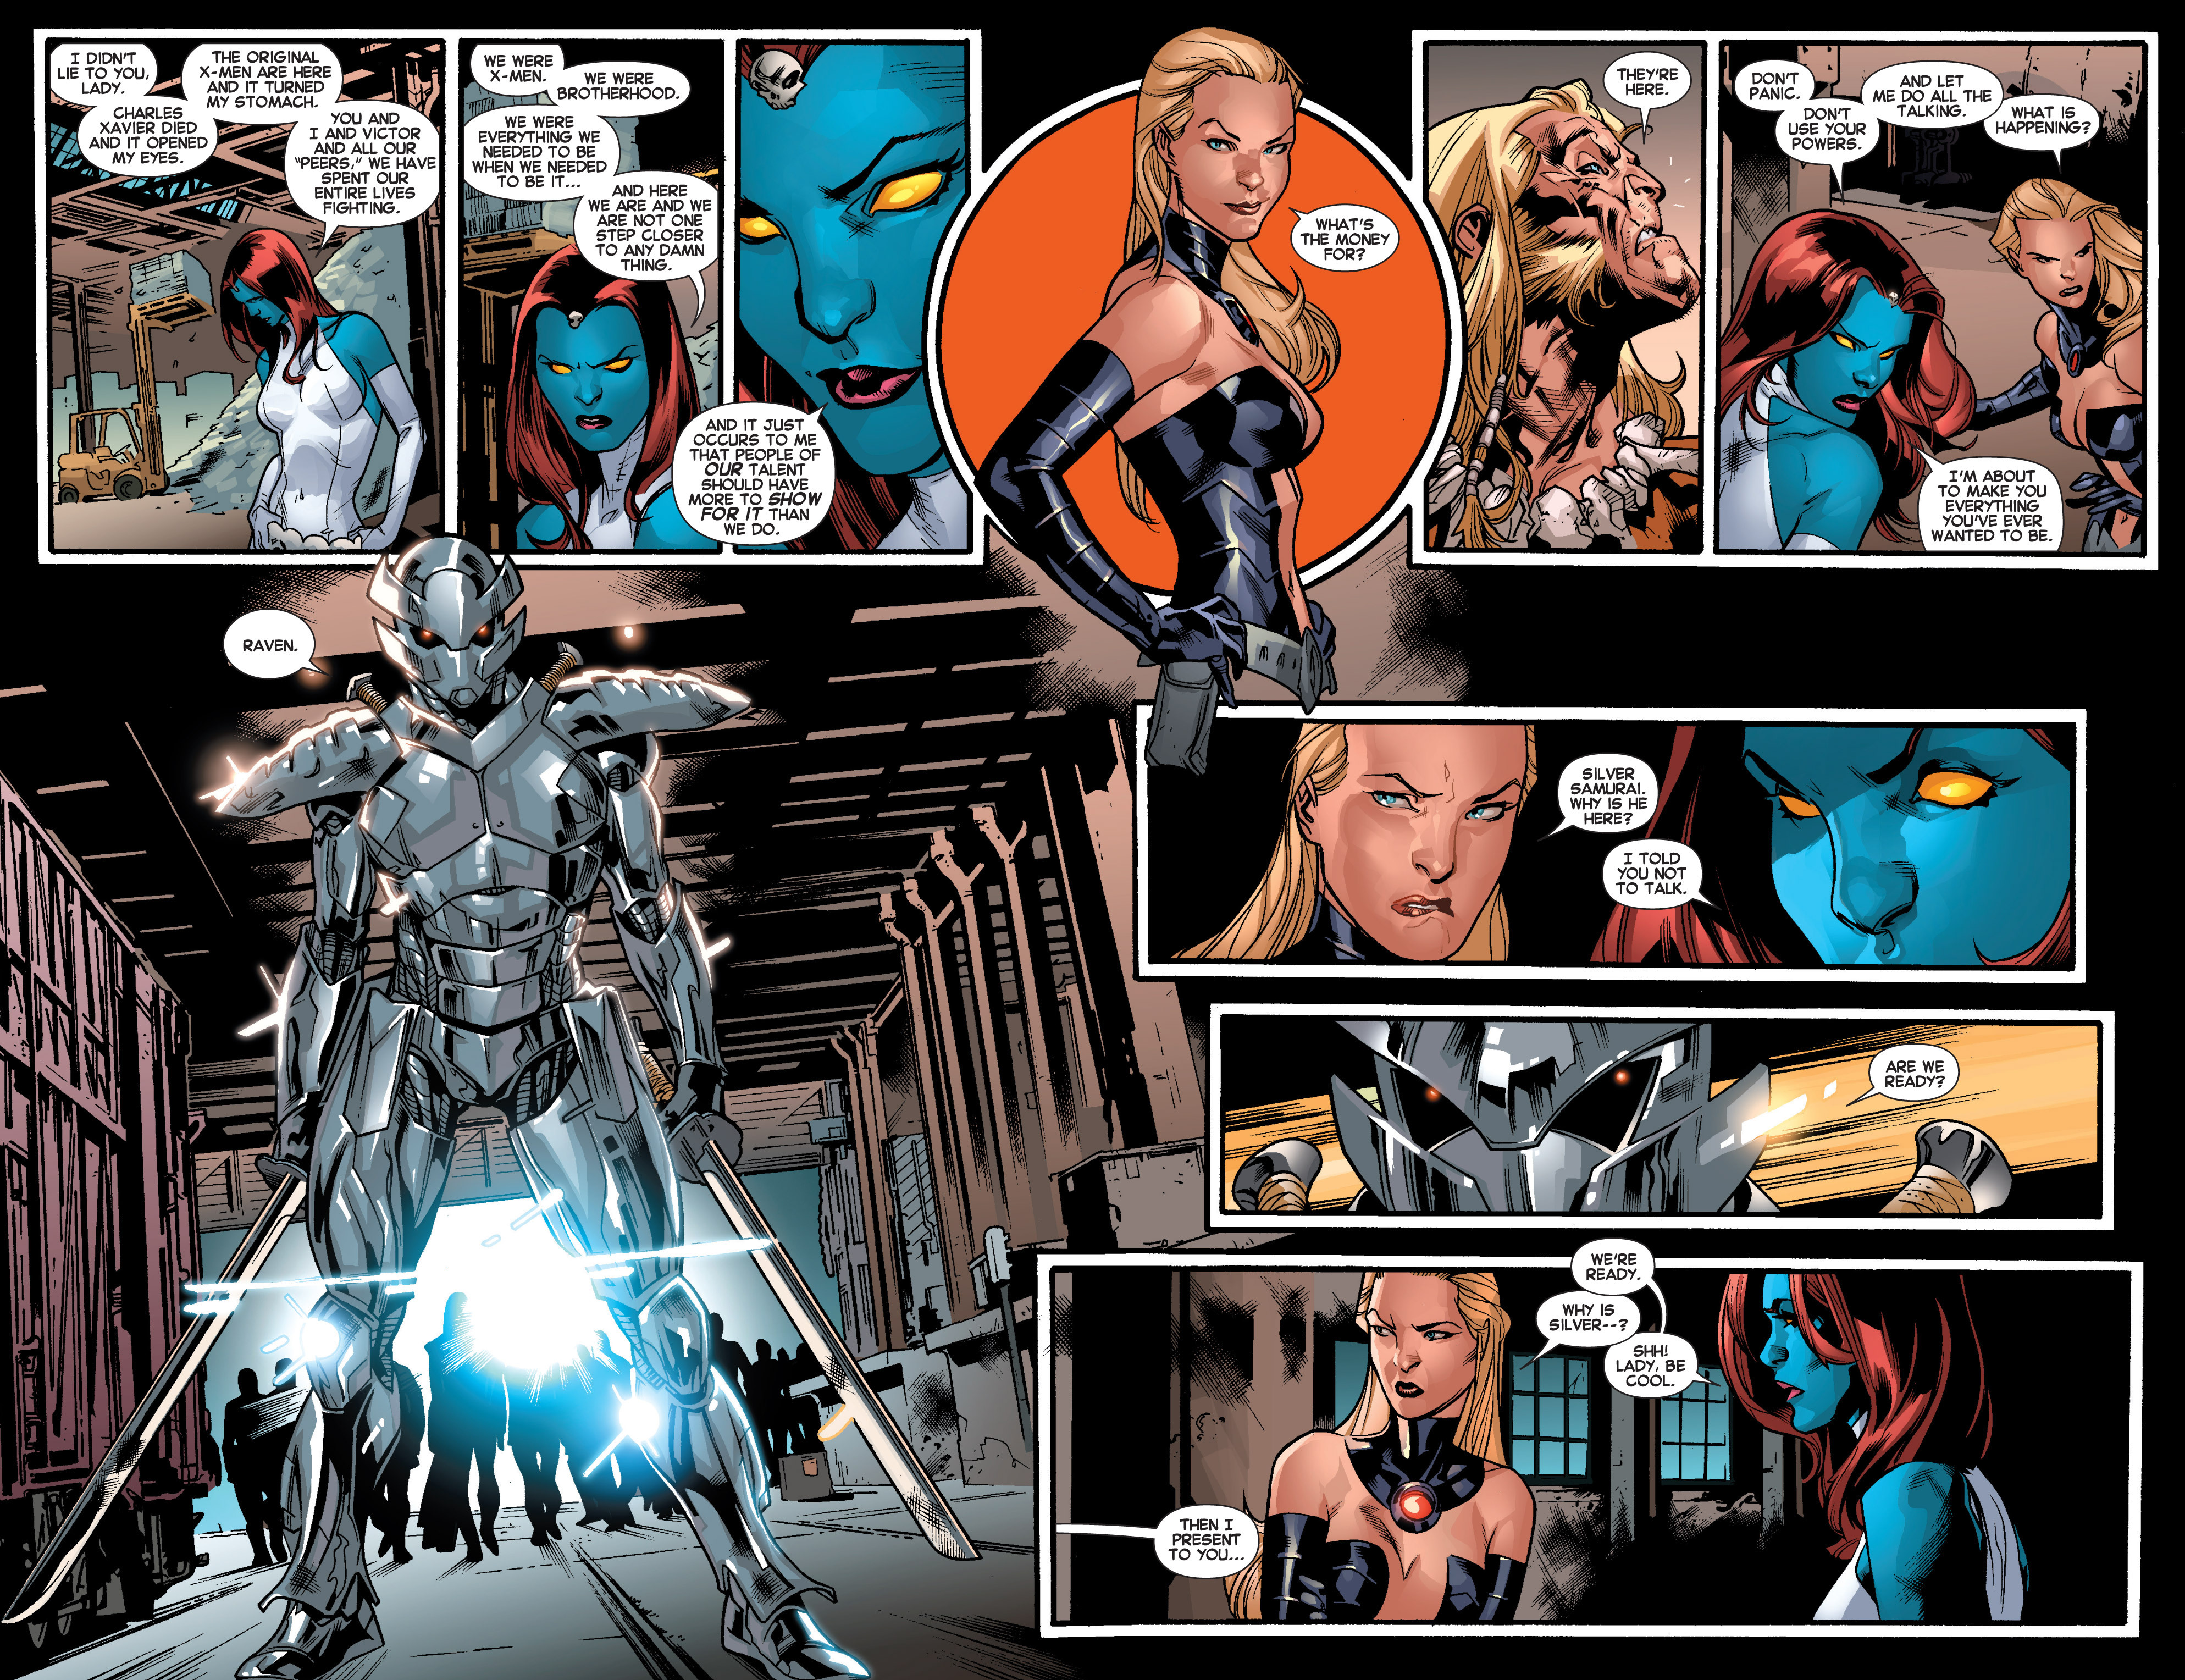 Read online All-New X-Men (2013) comic -  Issue # _Special - Out Of Their Depth - 57